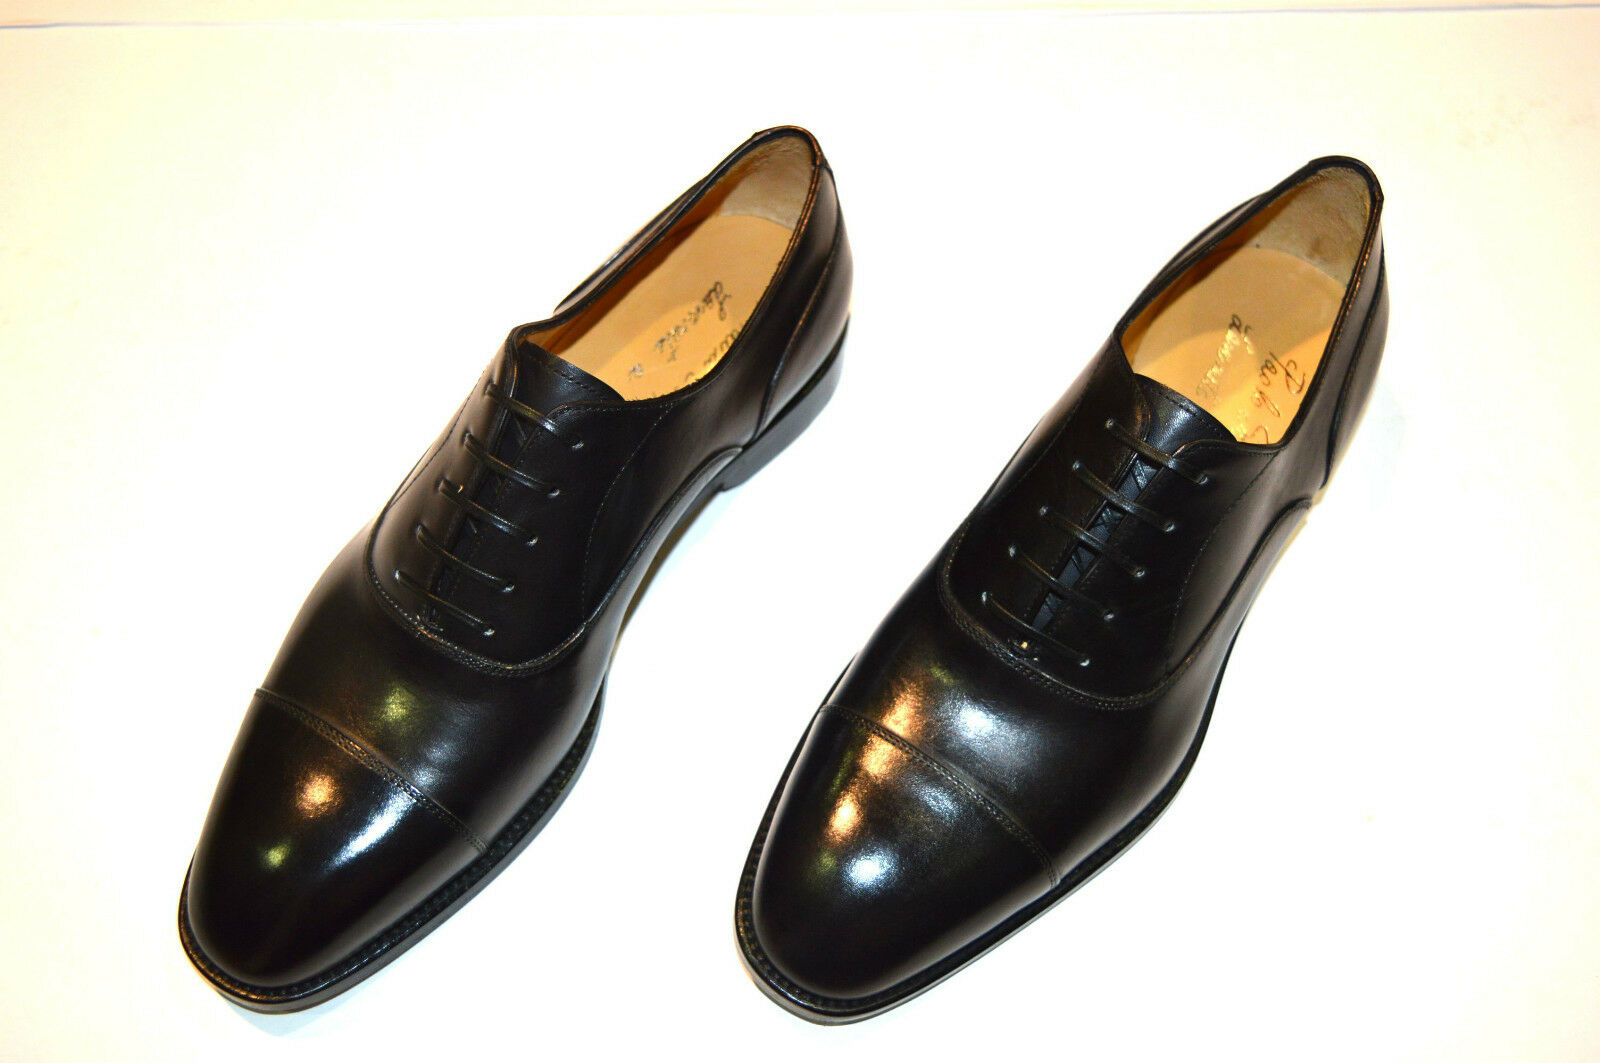 New  PAOLO SCAFORA  Dress Leather Luxury shoes Size Eu 44 Uk 10 Us 11 (Cod1)